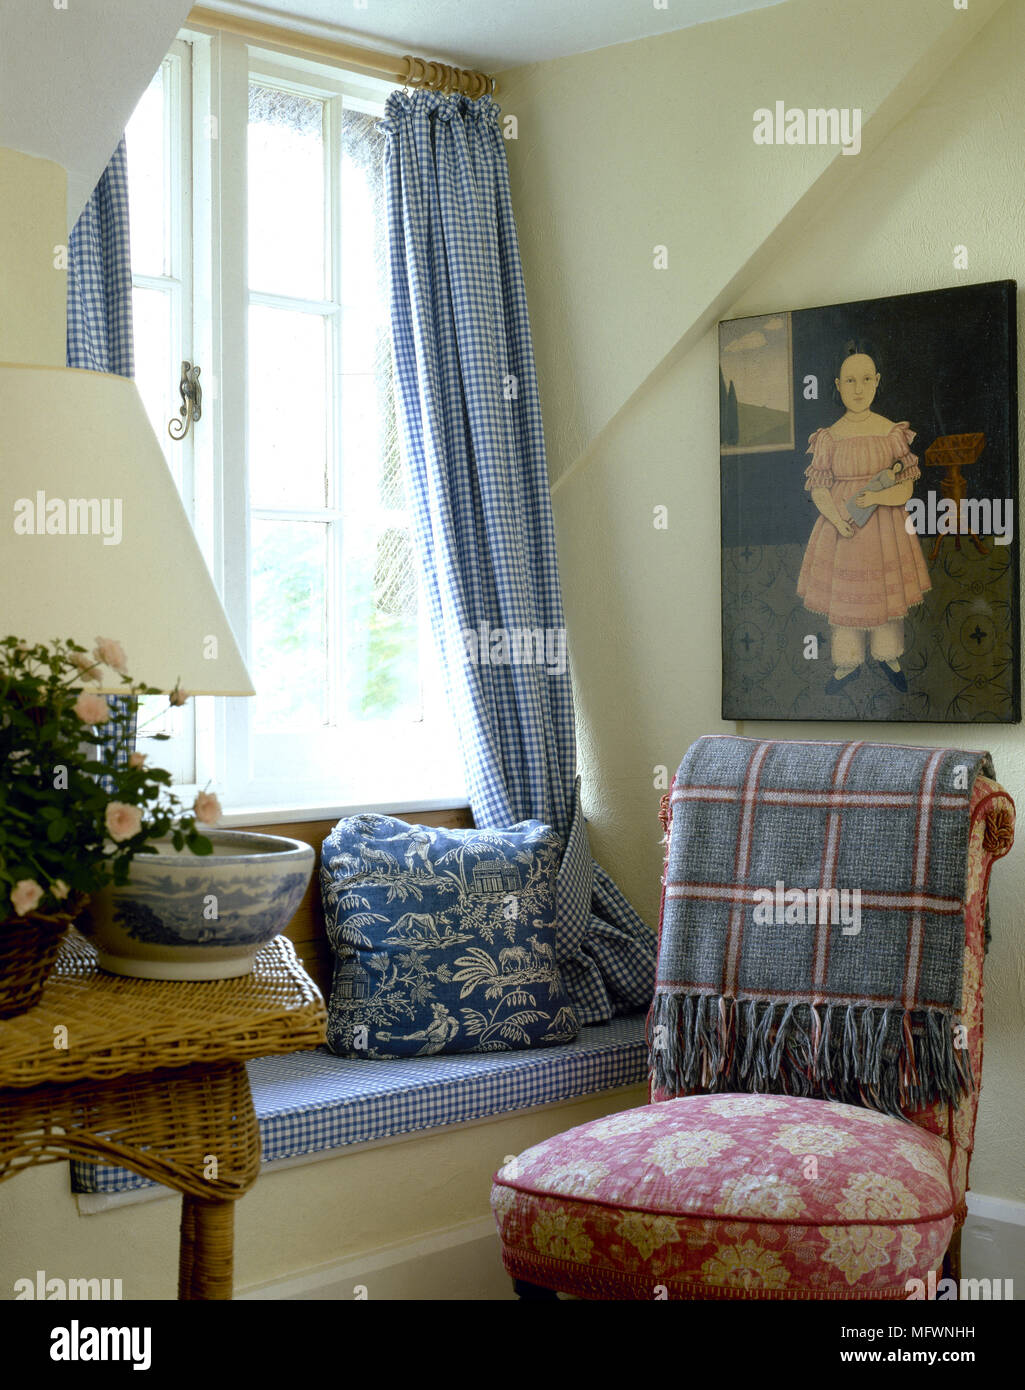 Country, Sitting Room, Detail, Blue White Check Curtains, Window Seat, Red Floral  Upholstered Chair, Cane Table,